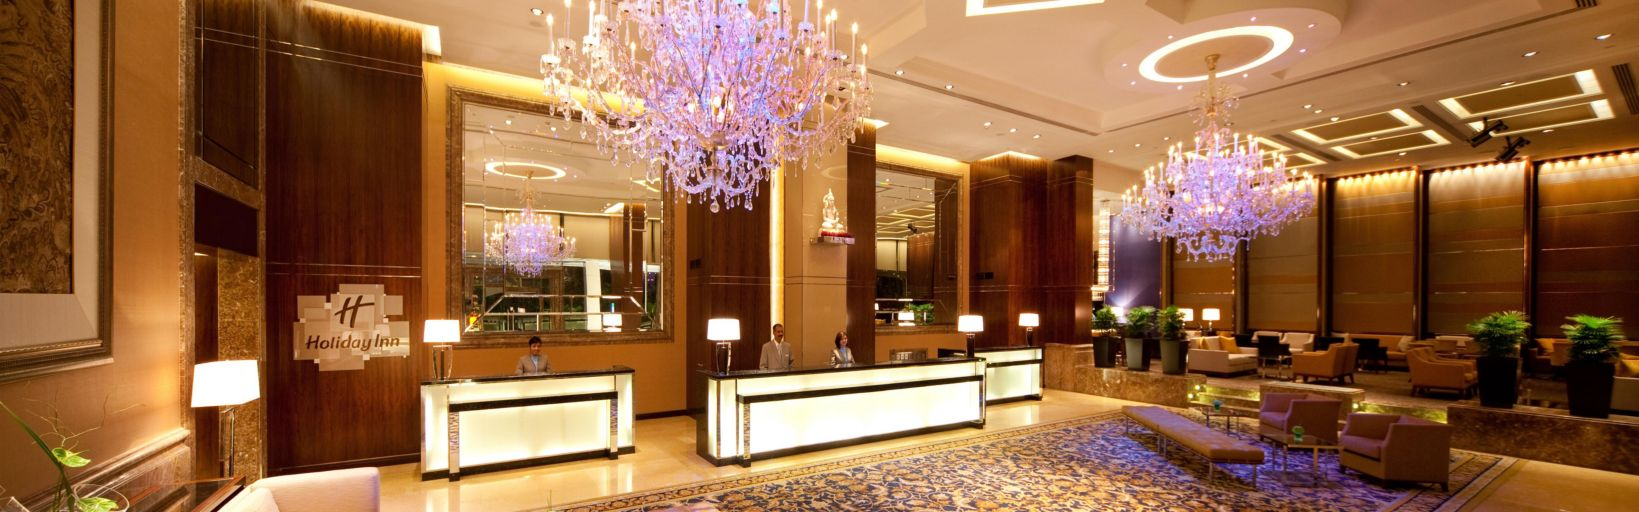 A Grand Hotel Lobby To Welcome Our Valued Guests